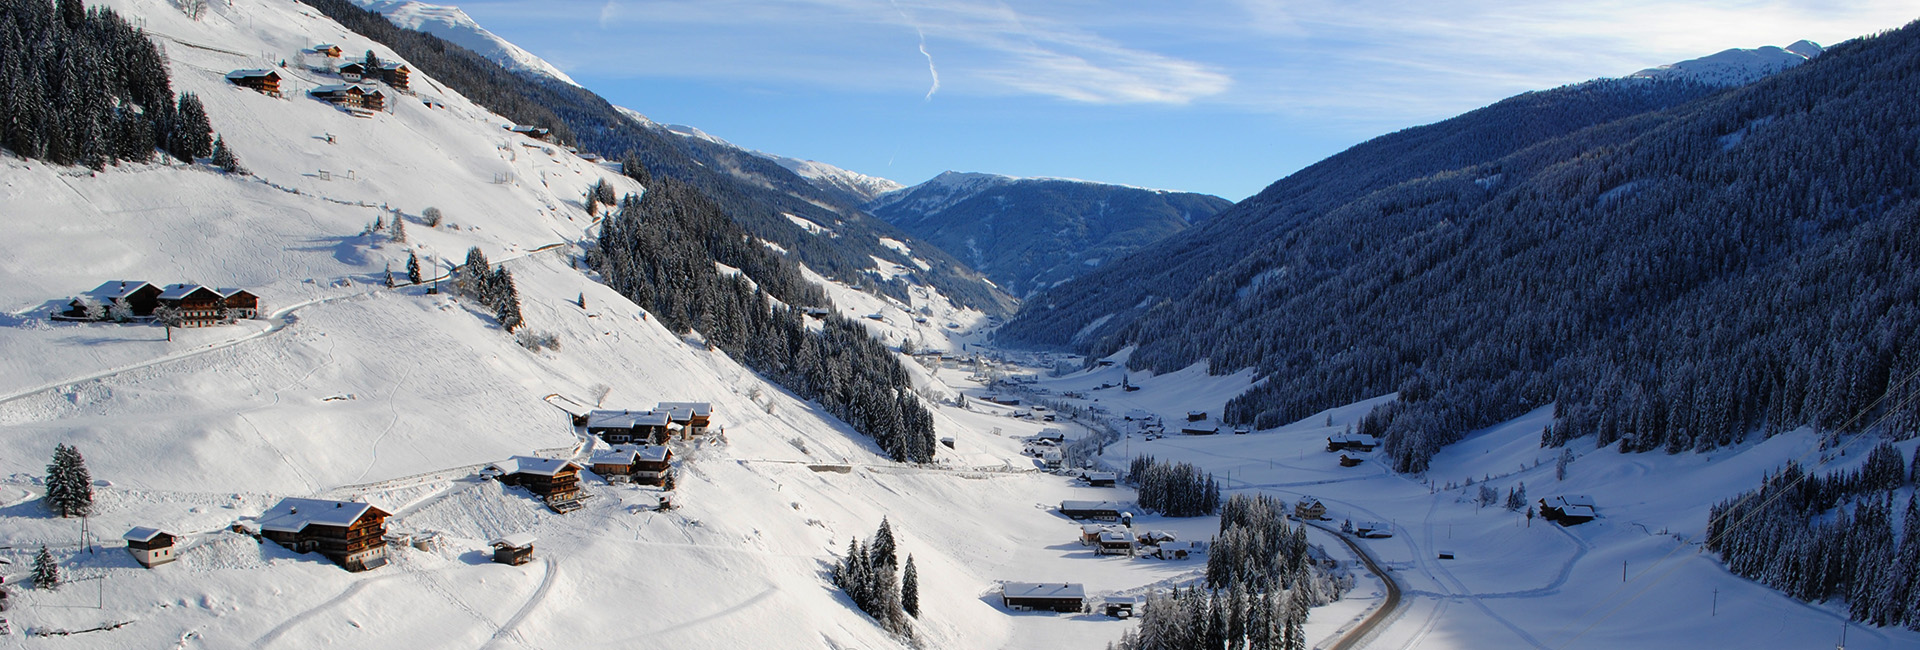 Region Villgratental